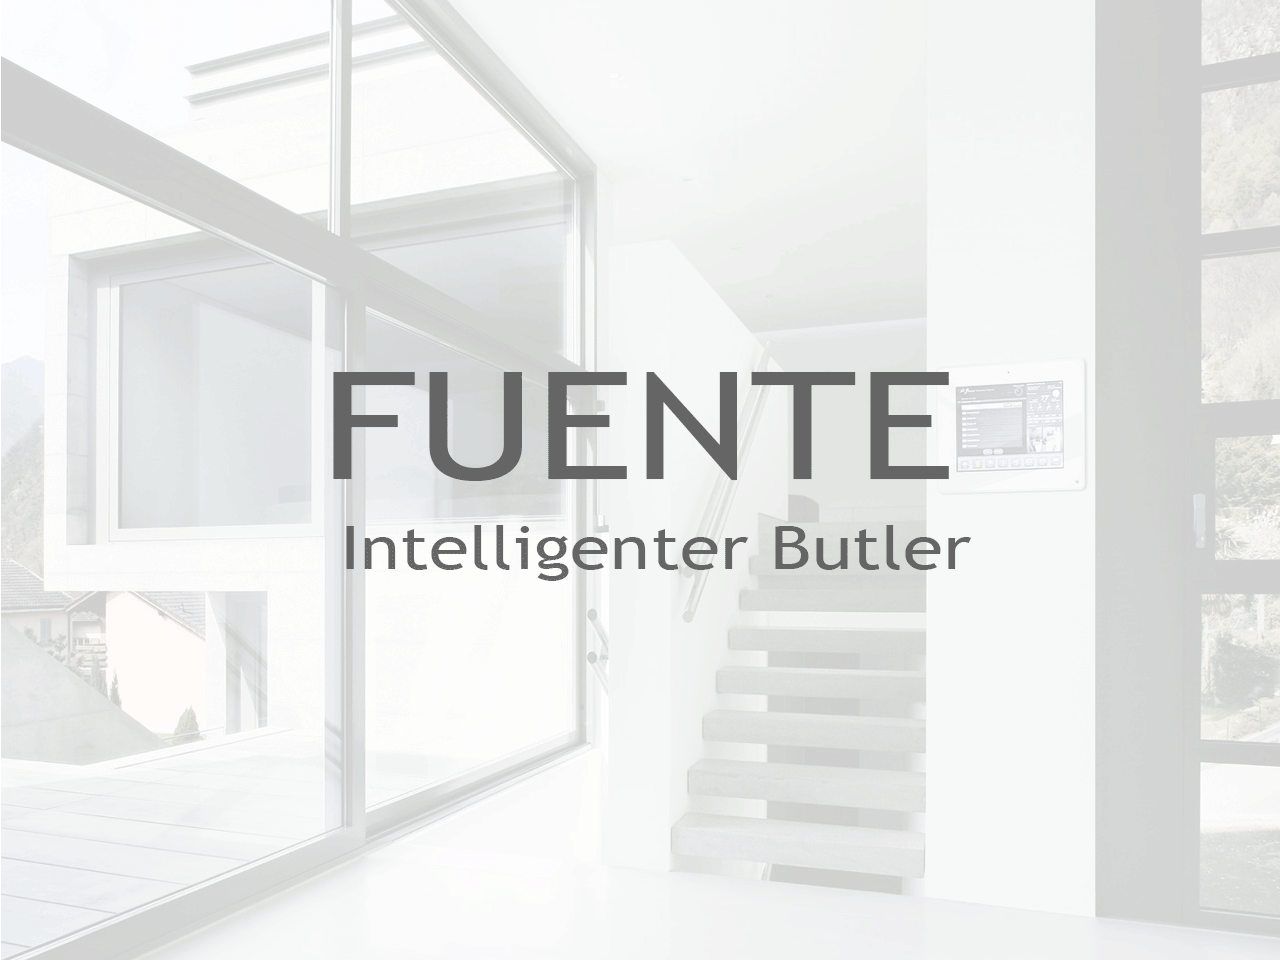 FUENTE Intelligenter Butler - Inputech DESIGN